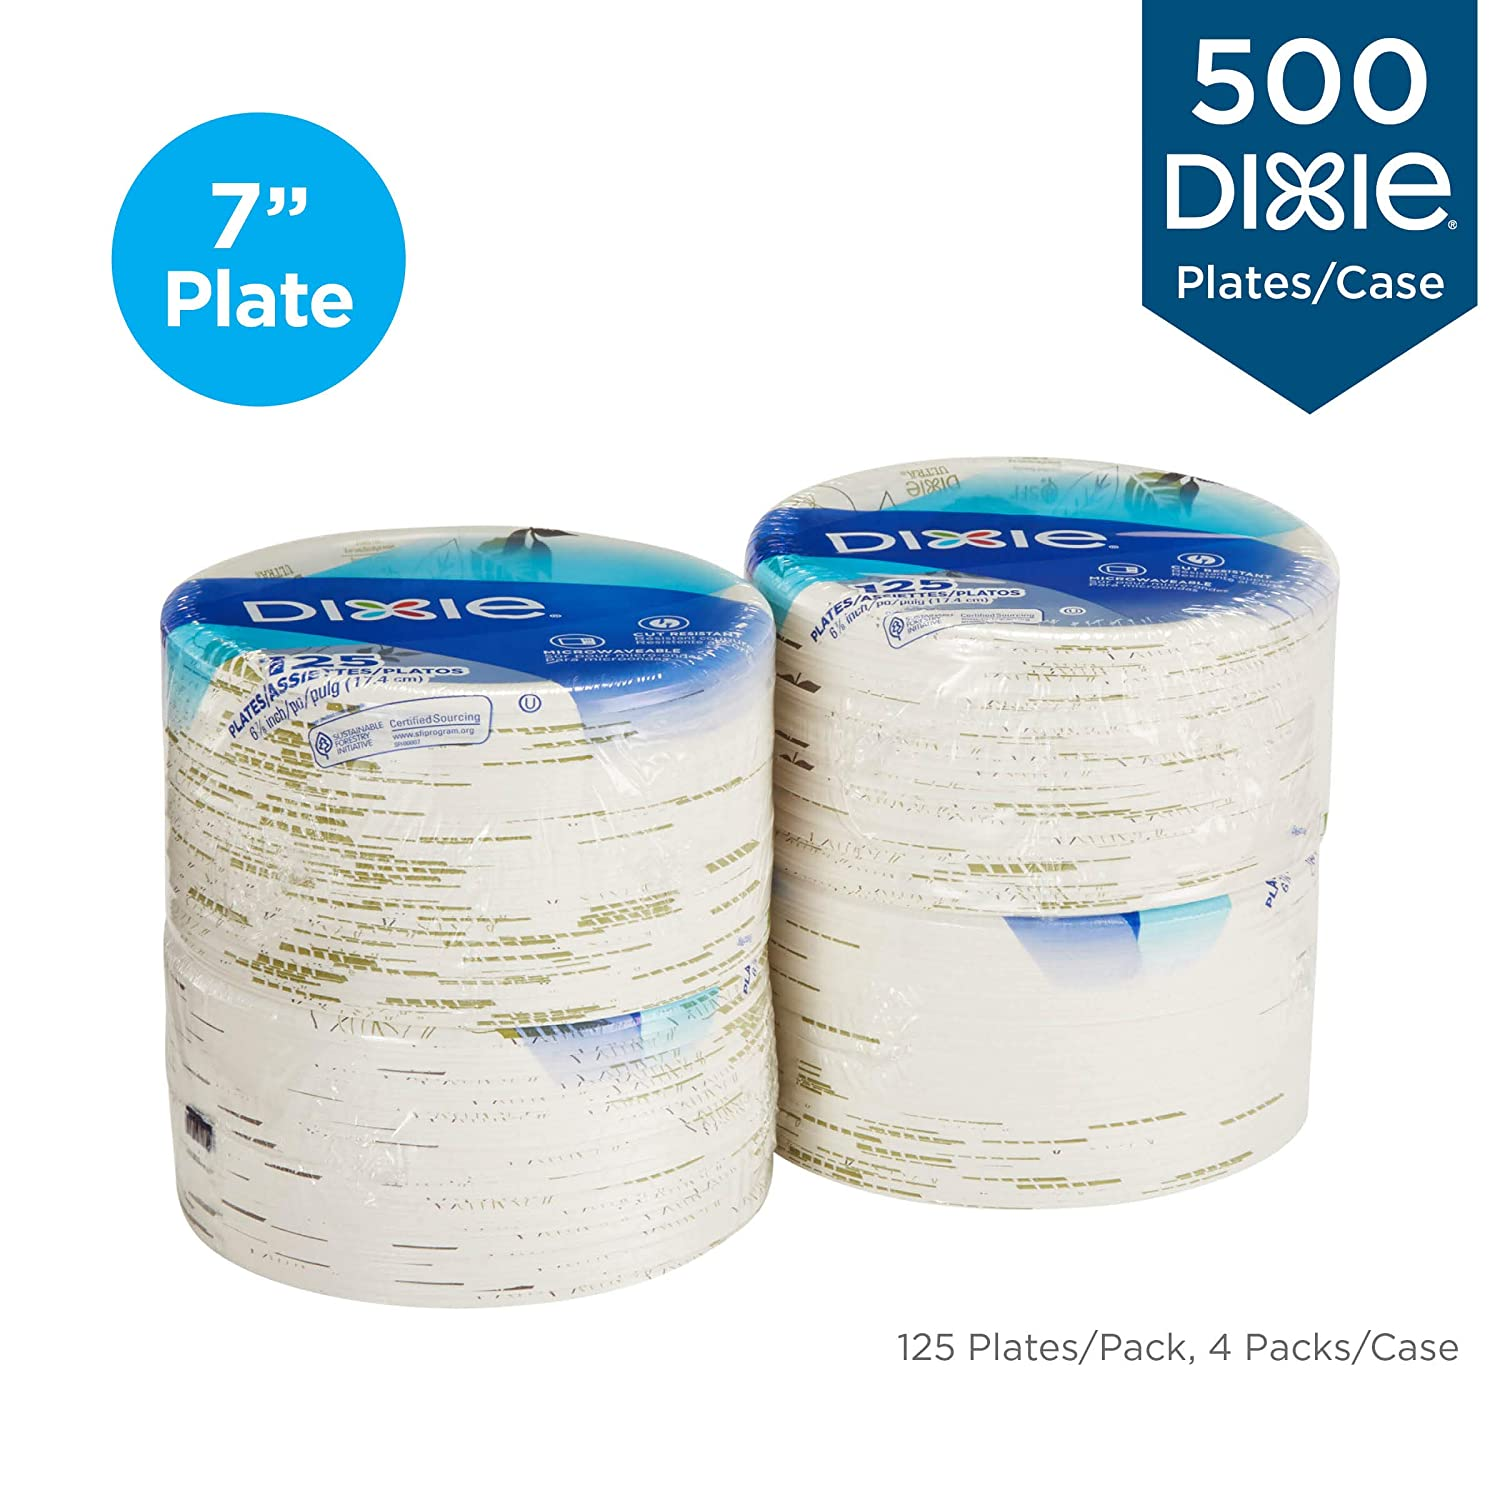 "500 Dixie 6 7/8"" (17.4 Cm) Medium-Weight Paper Plates For"